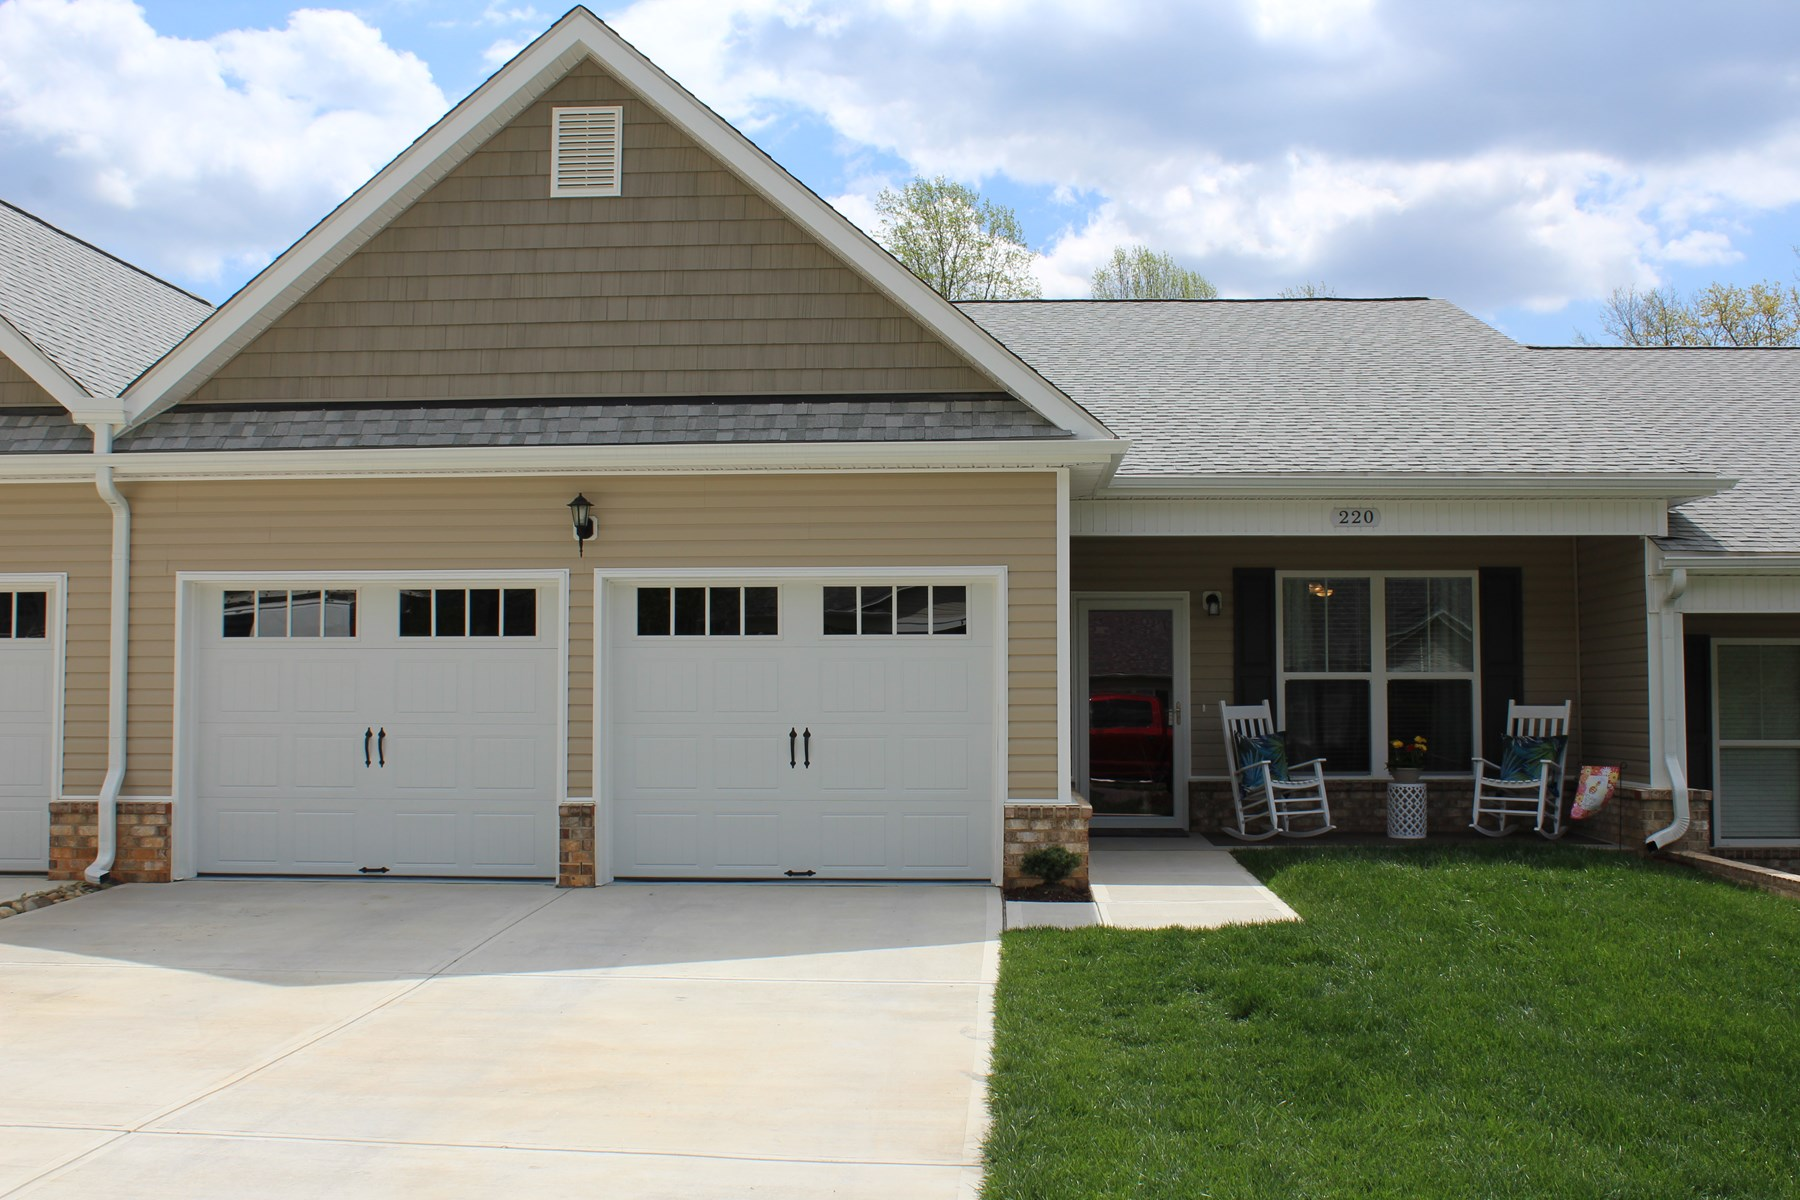 Home for sale in Pilot Mountain - Town Home